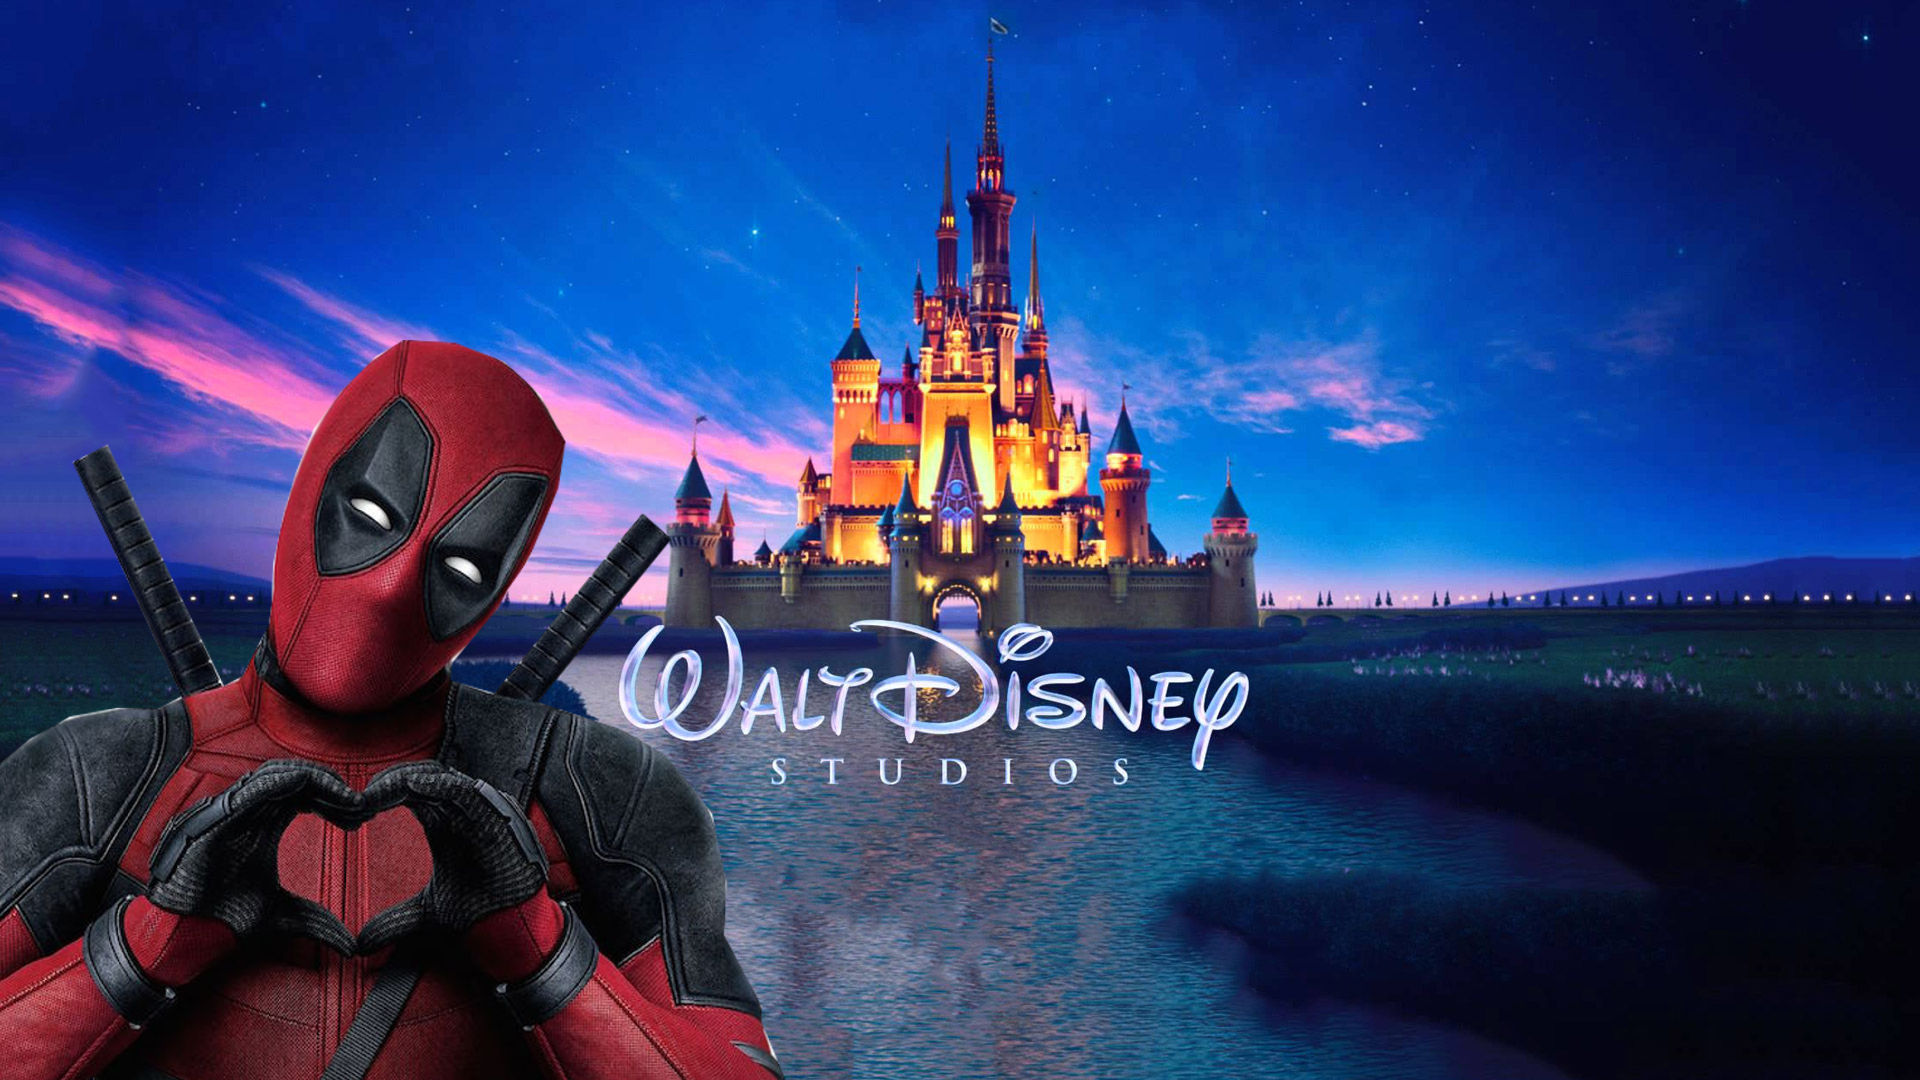 It's only been a few hours since the Disney/Fox blockbuster deal and Deadpool is already in trouble with his new bosses.